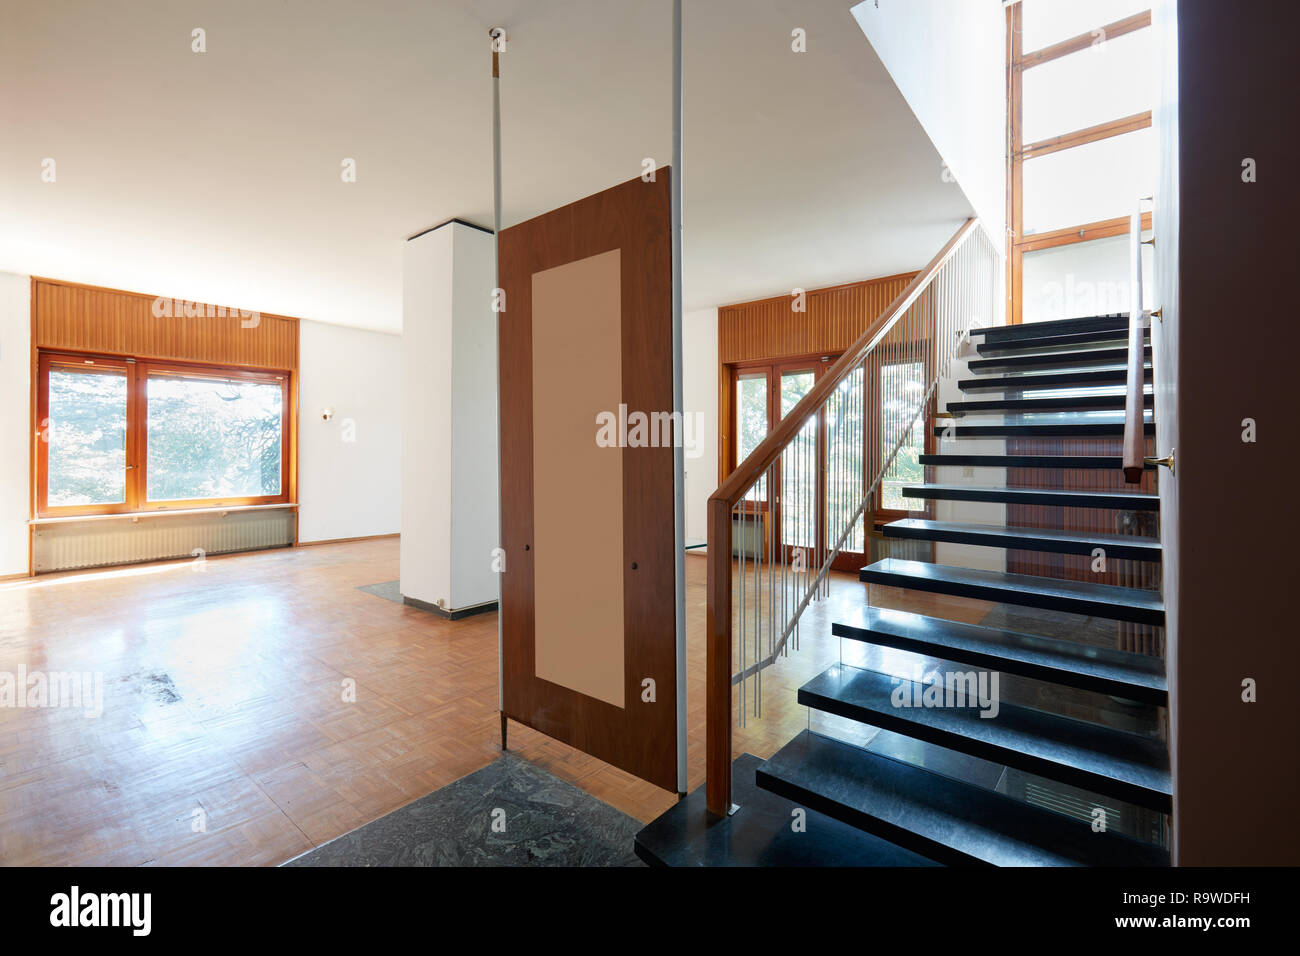 Empty Living Room With Black Marble Staircase Apartment Interior In Old House Stock Photo Alamy